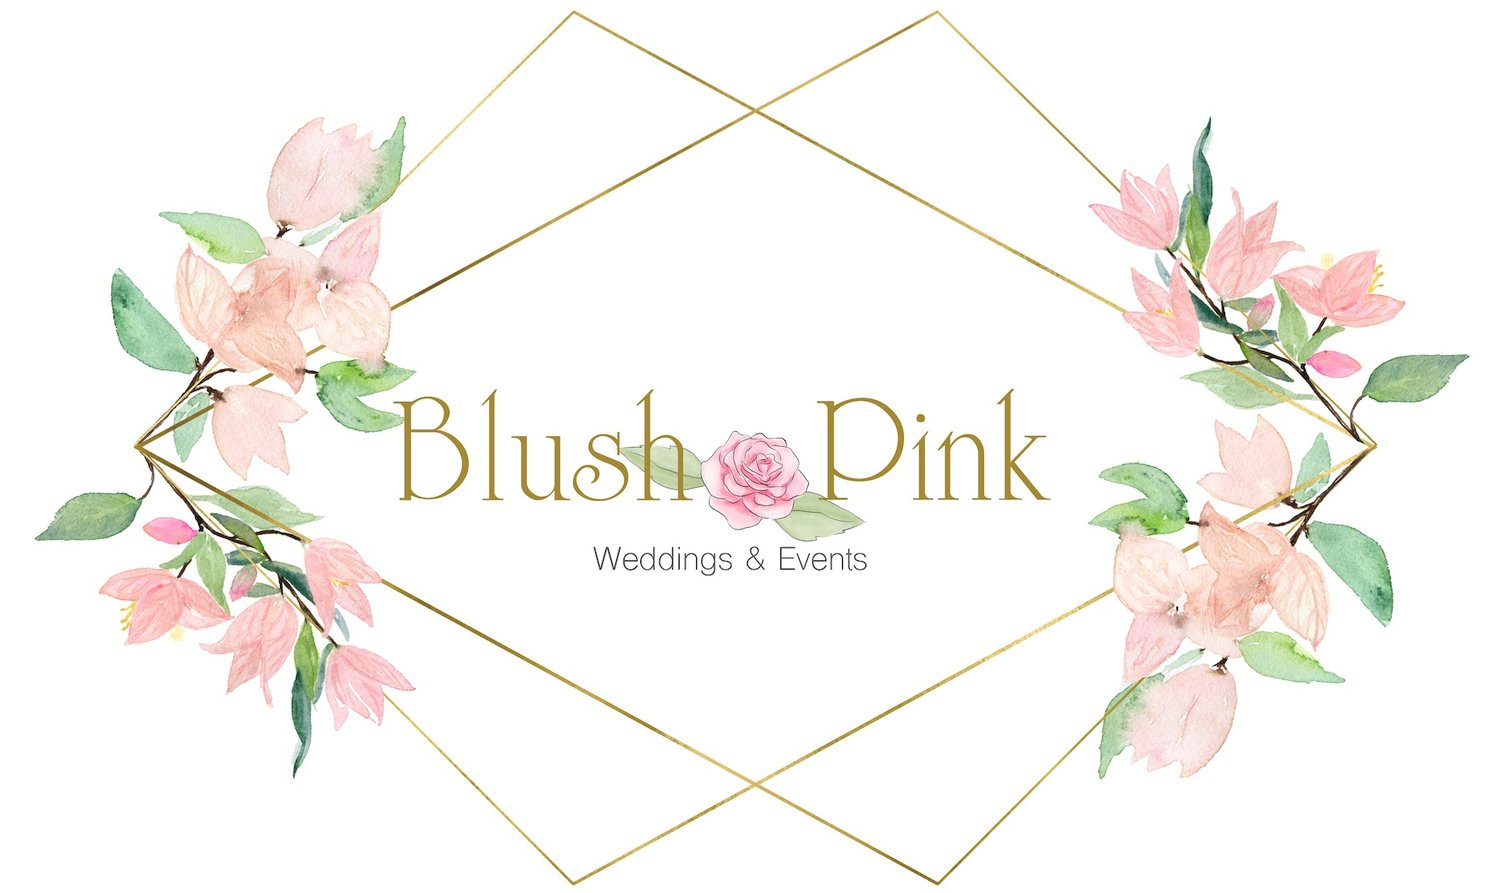 Wedding Planner | Blush Pink Weddings